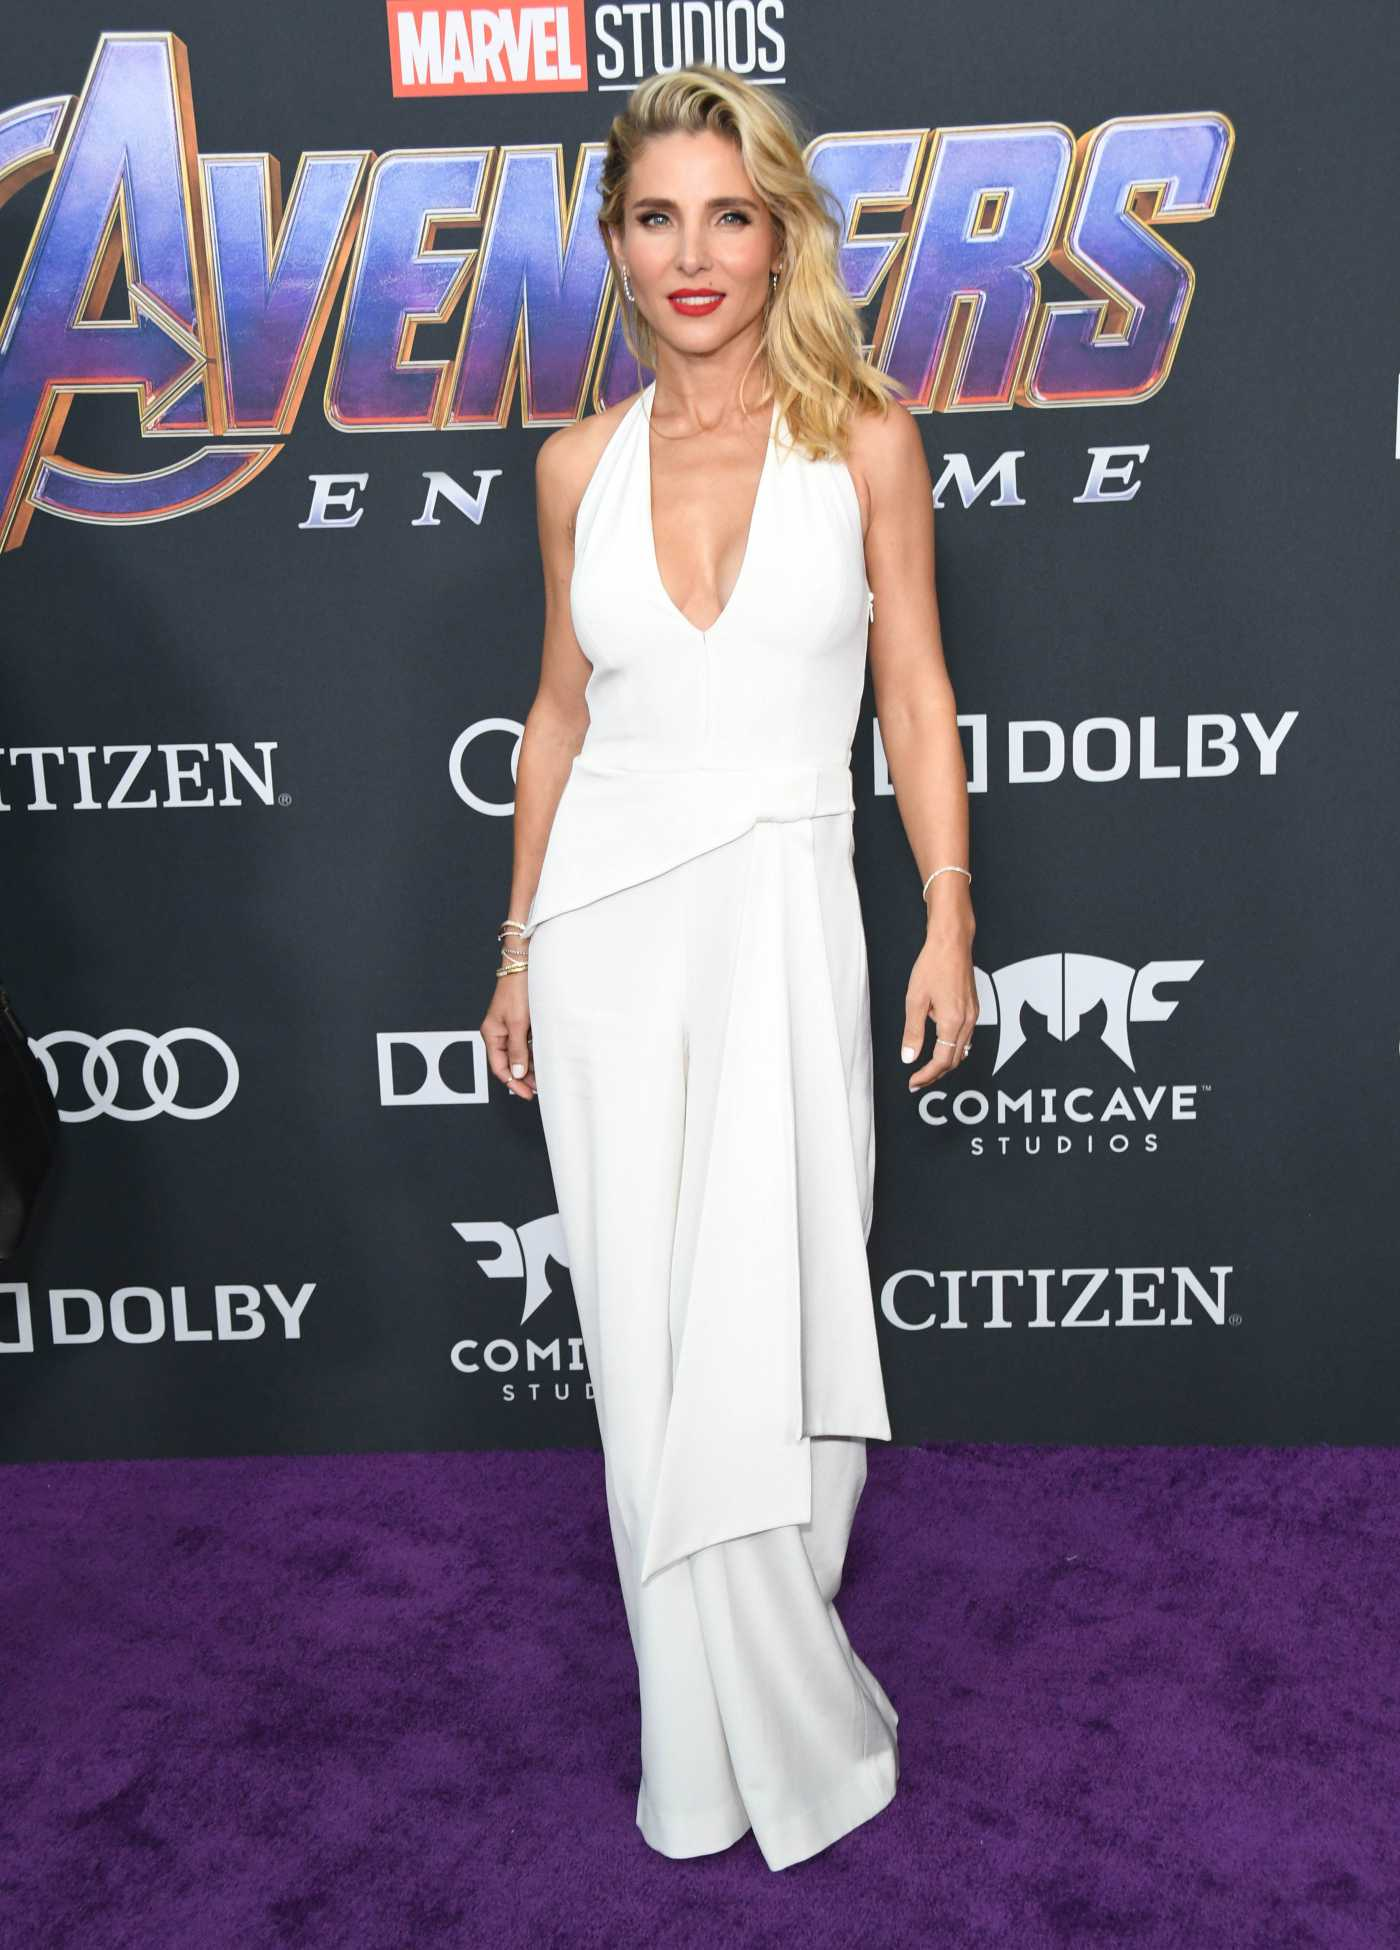 Elsa Pataky Attends Avengers: Endgame Premiere in Los Angeles 04/22/2019